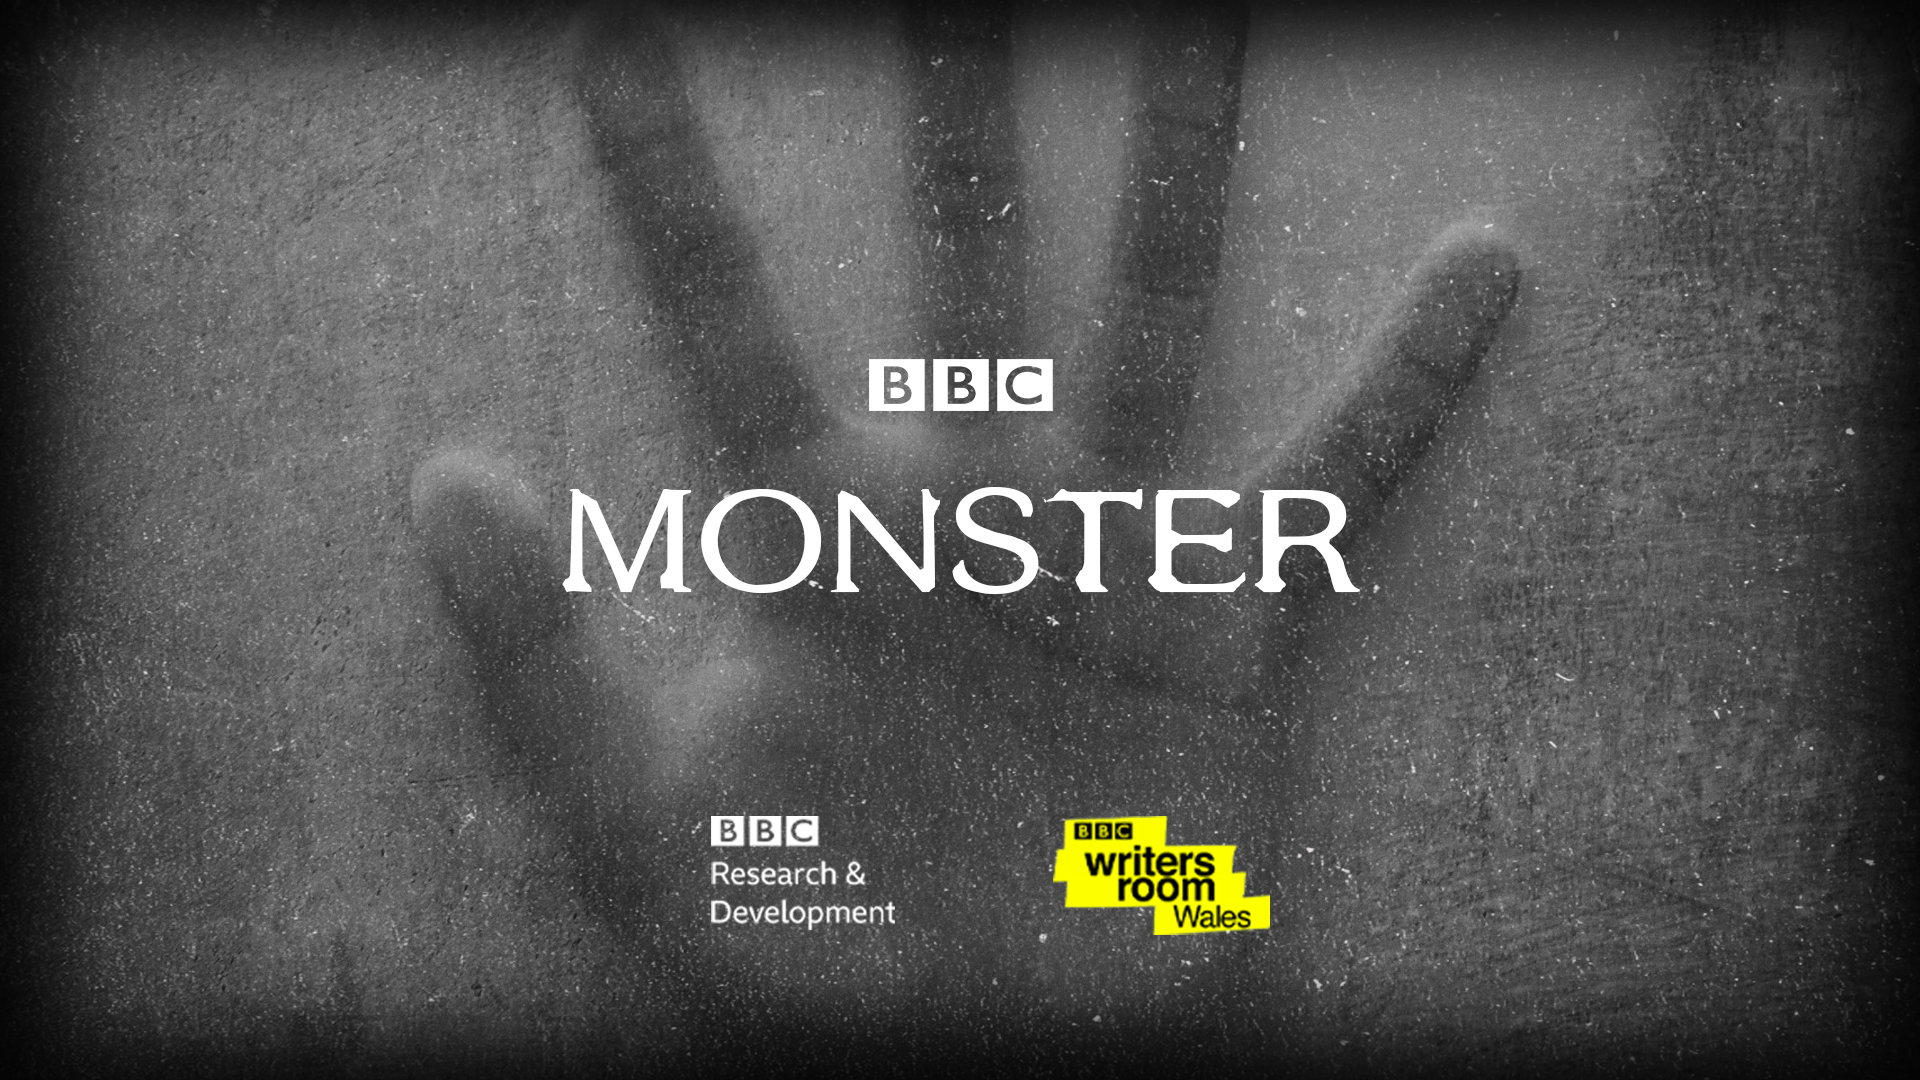 BBC_Monster_croppable.png